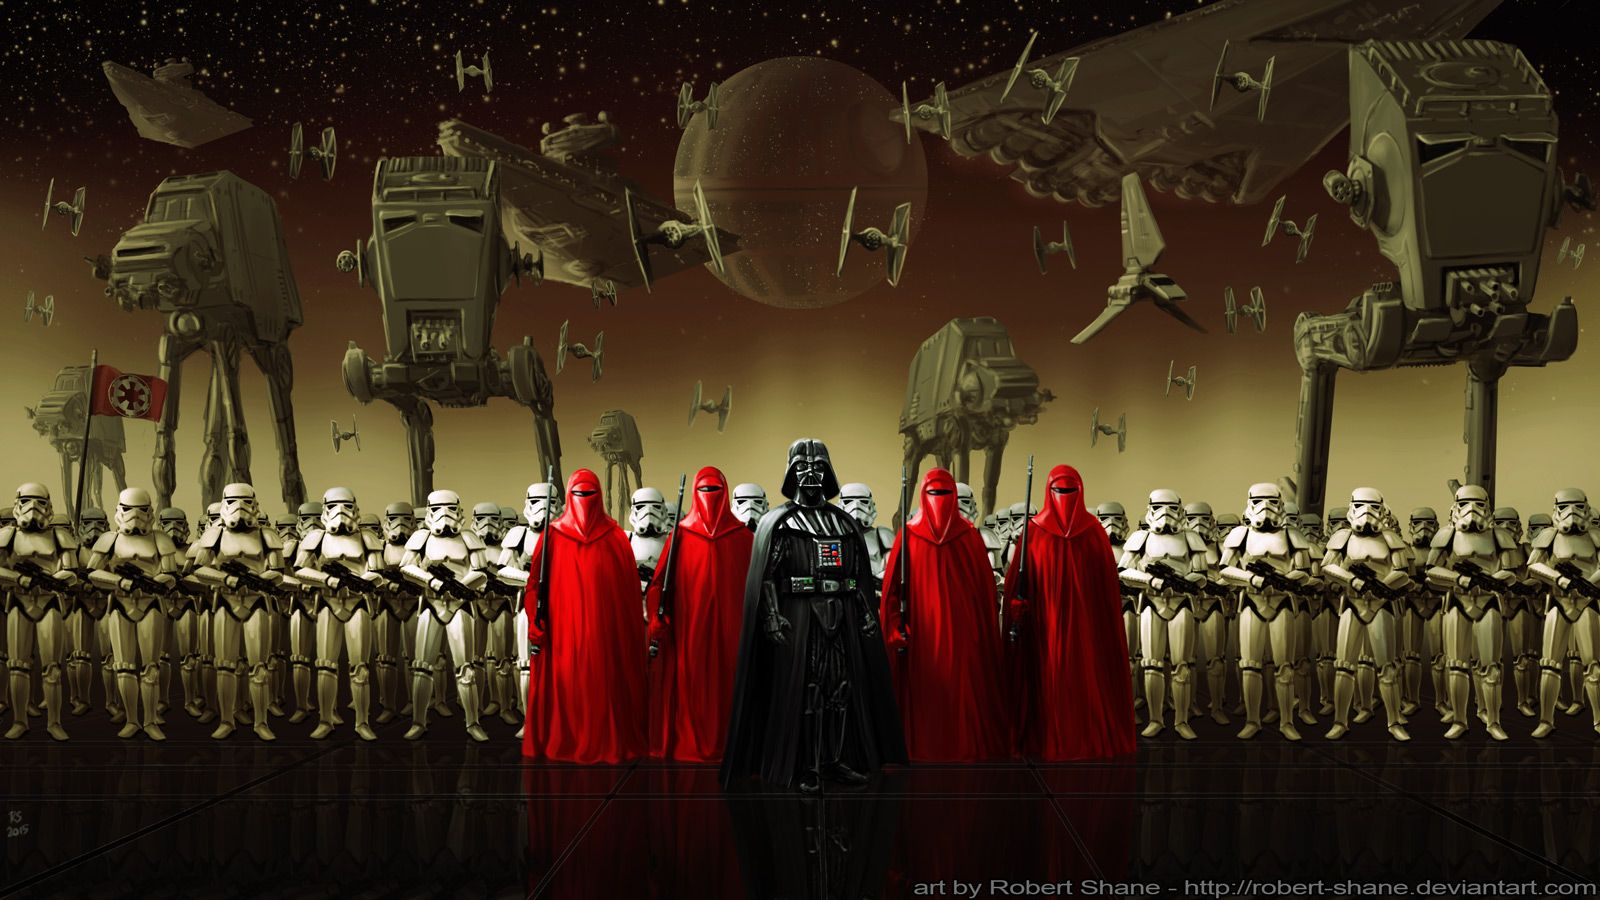 The Imperial Army 1600 900 R Wallpapers Star Wars Awesome Star Wars Wallpaper Star Wars Art